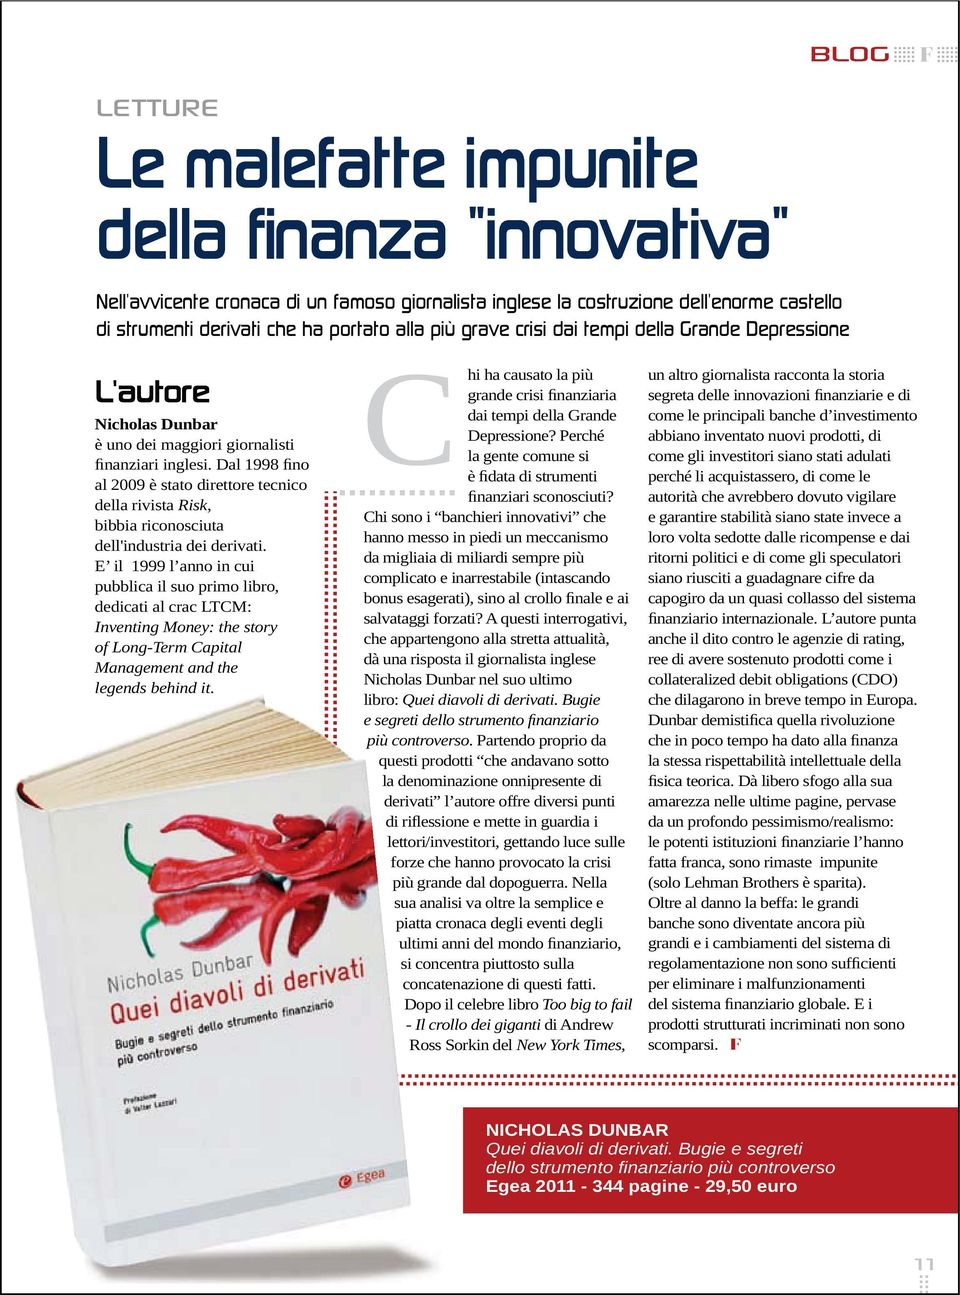 pubblica il suo primo libro, Inventing Money: the story of Long-Term Capital Management and the legends behind it. Chi ha causato la più dai tempi della Grande Depressione?